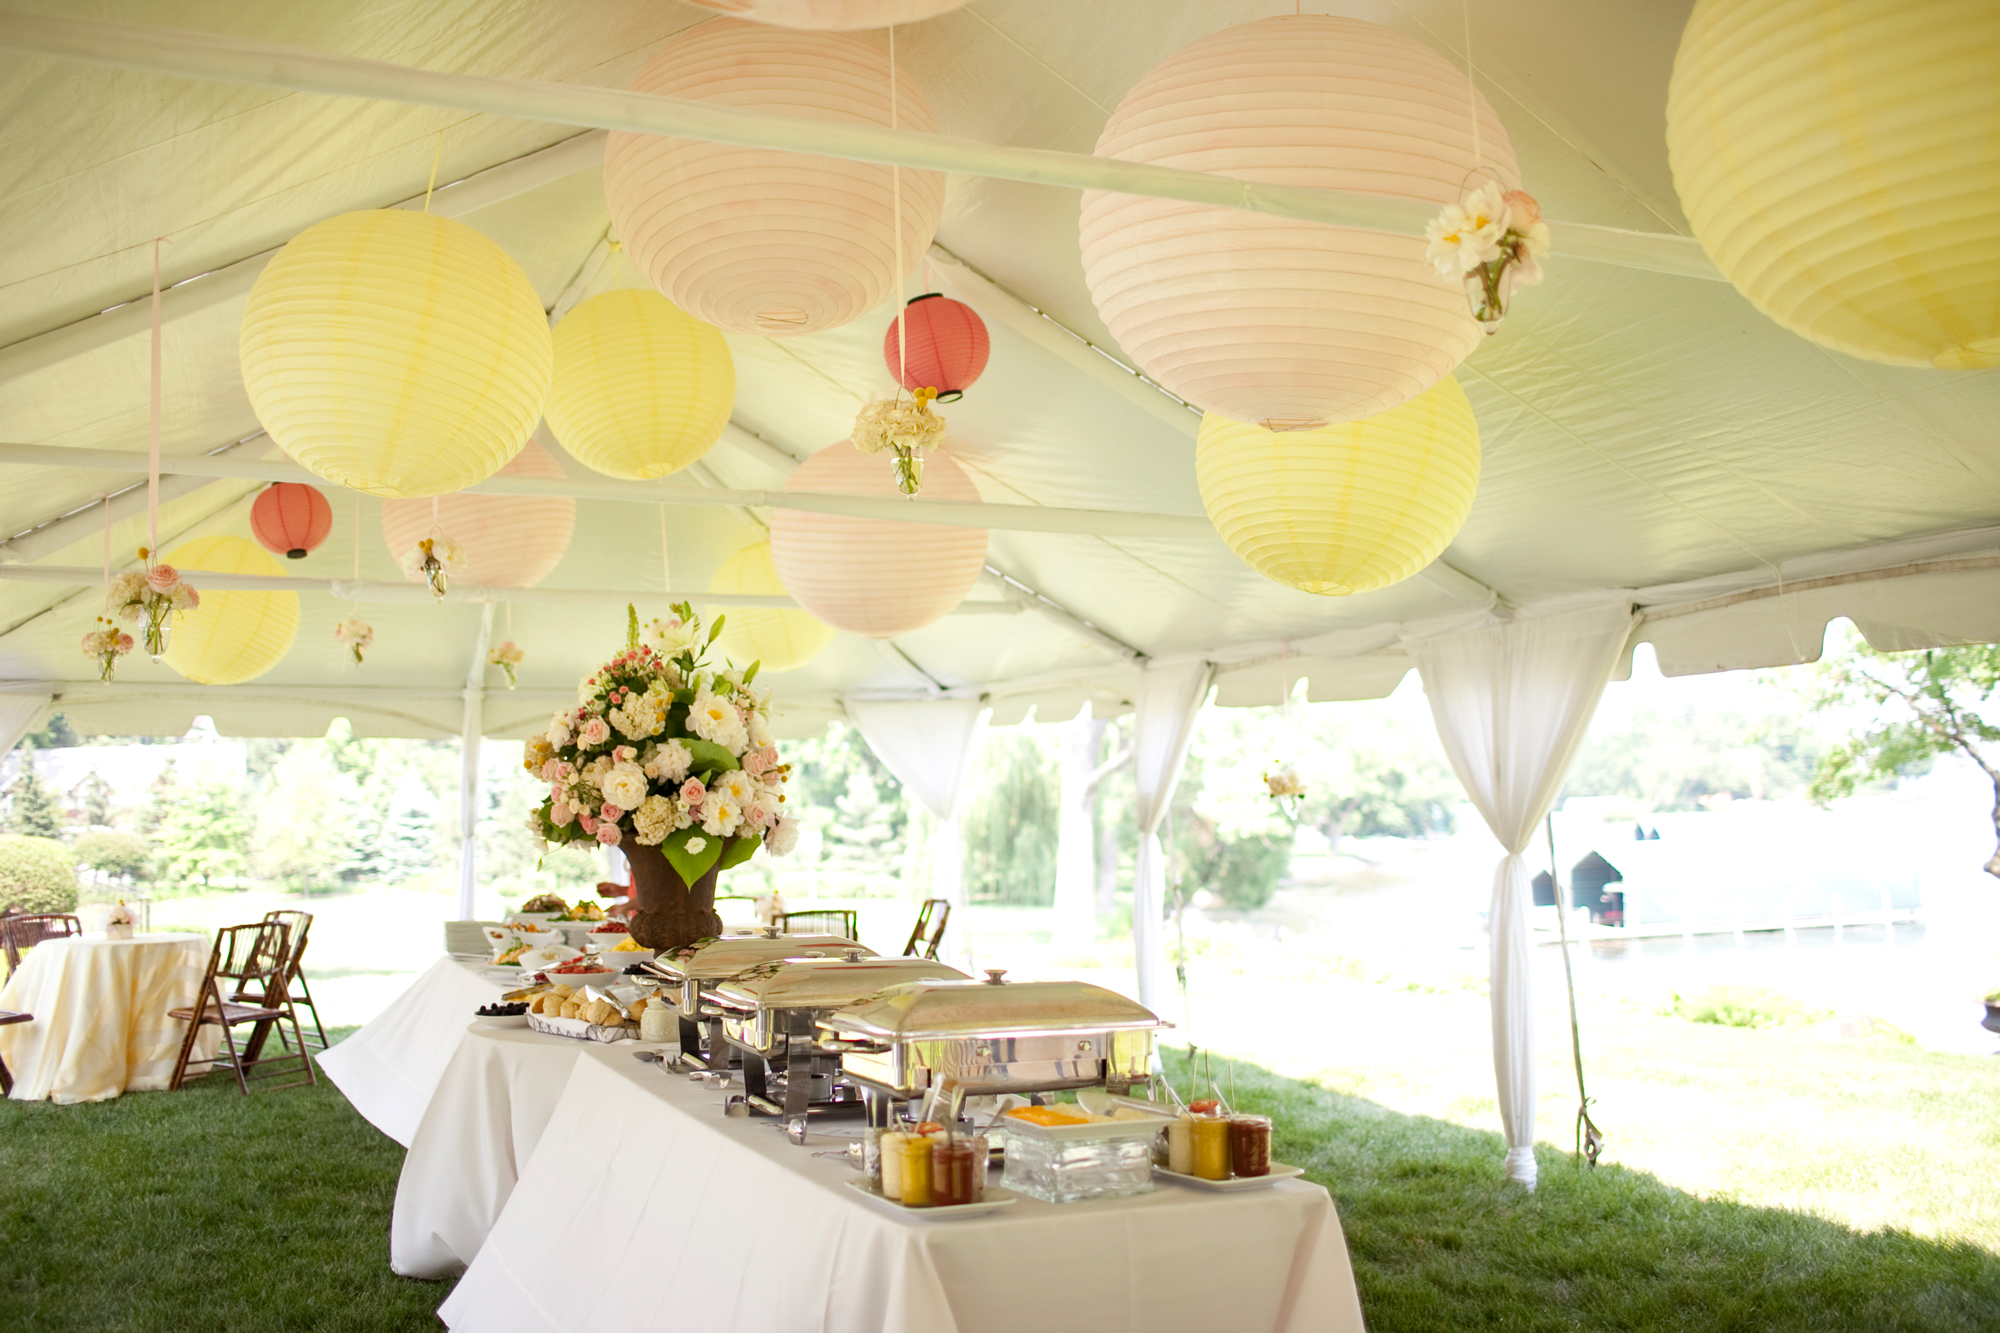 Amy Zaroff - Graduation Party Event Planning